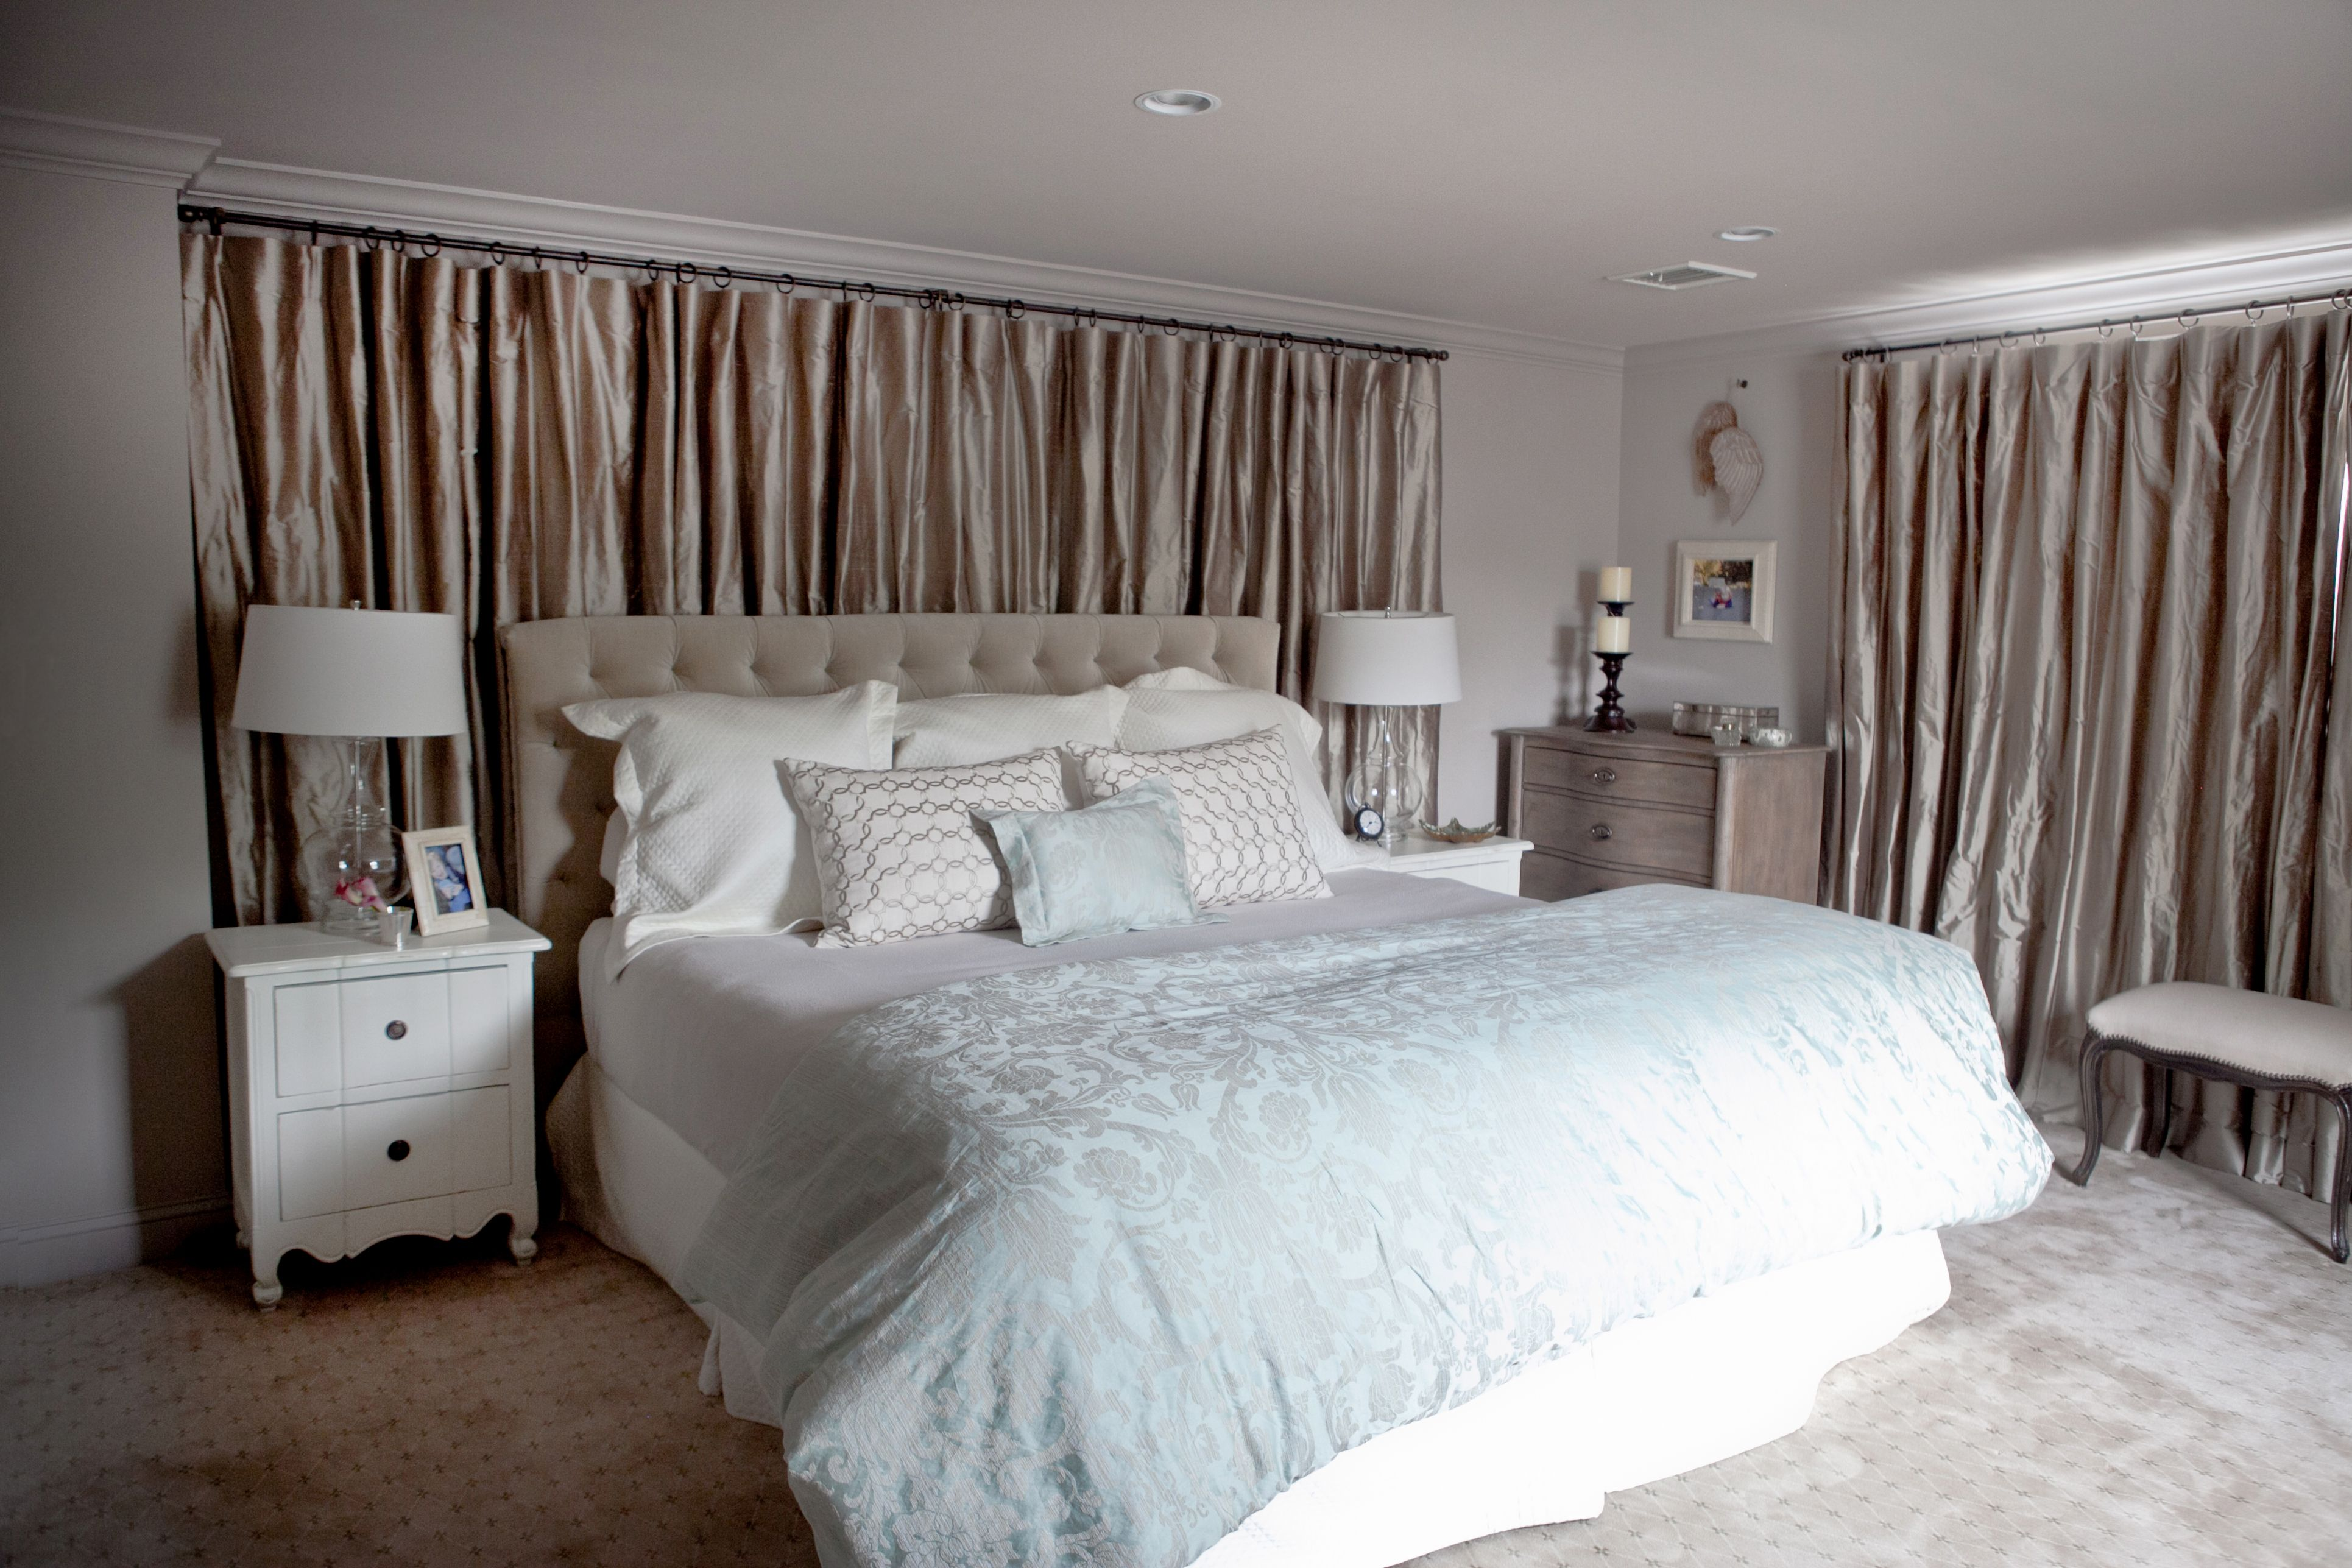 Drapes Behind Bed From The Windows To The Wall Curtains That Are More Than Just Window Small Room Bedroom Country Style Bedroom Decor Bedroom Decor